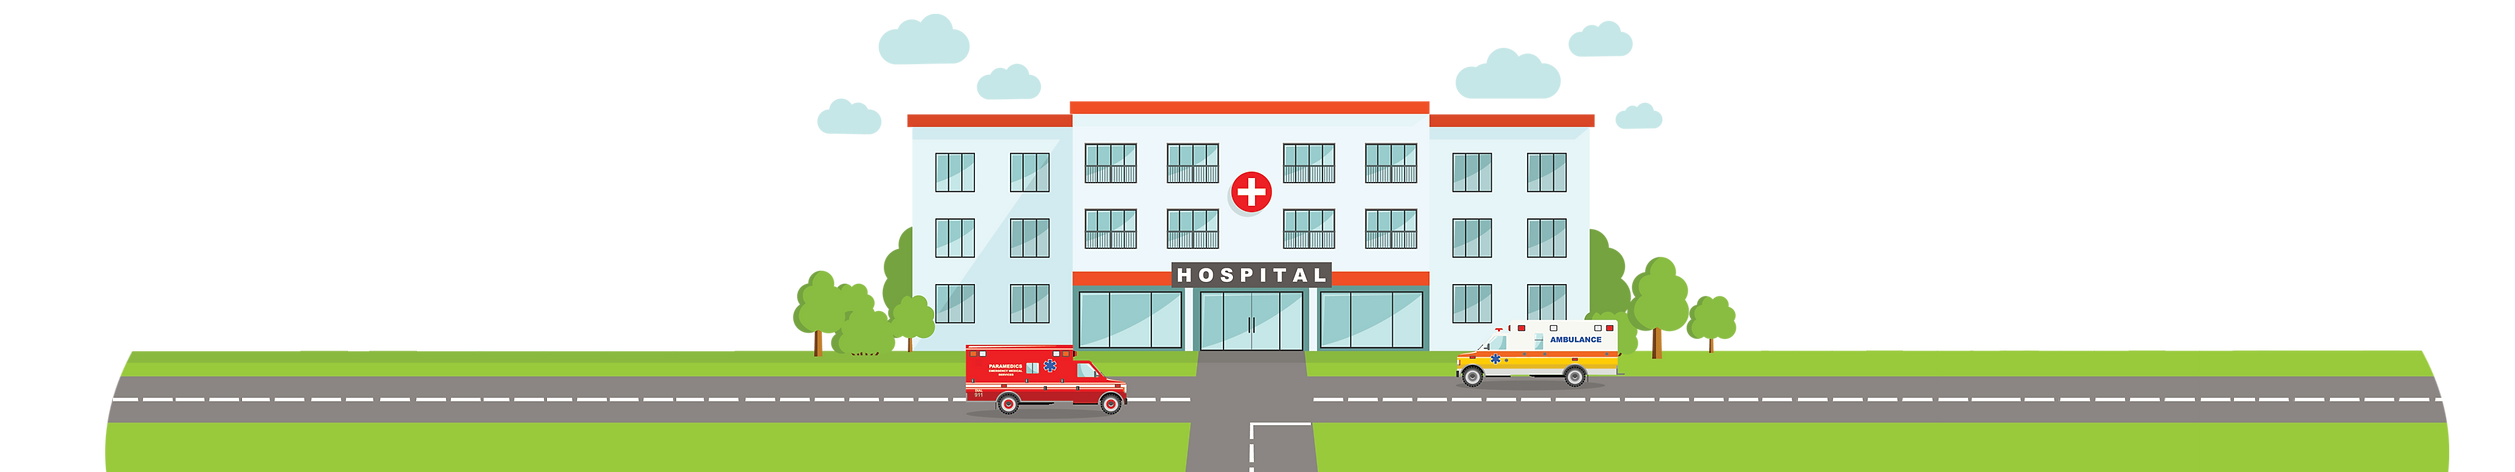 ultra wide hospital PPI cropped.png